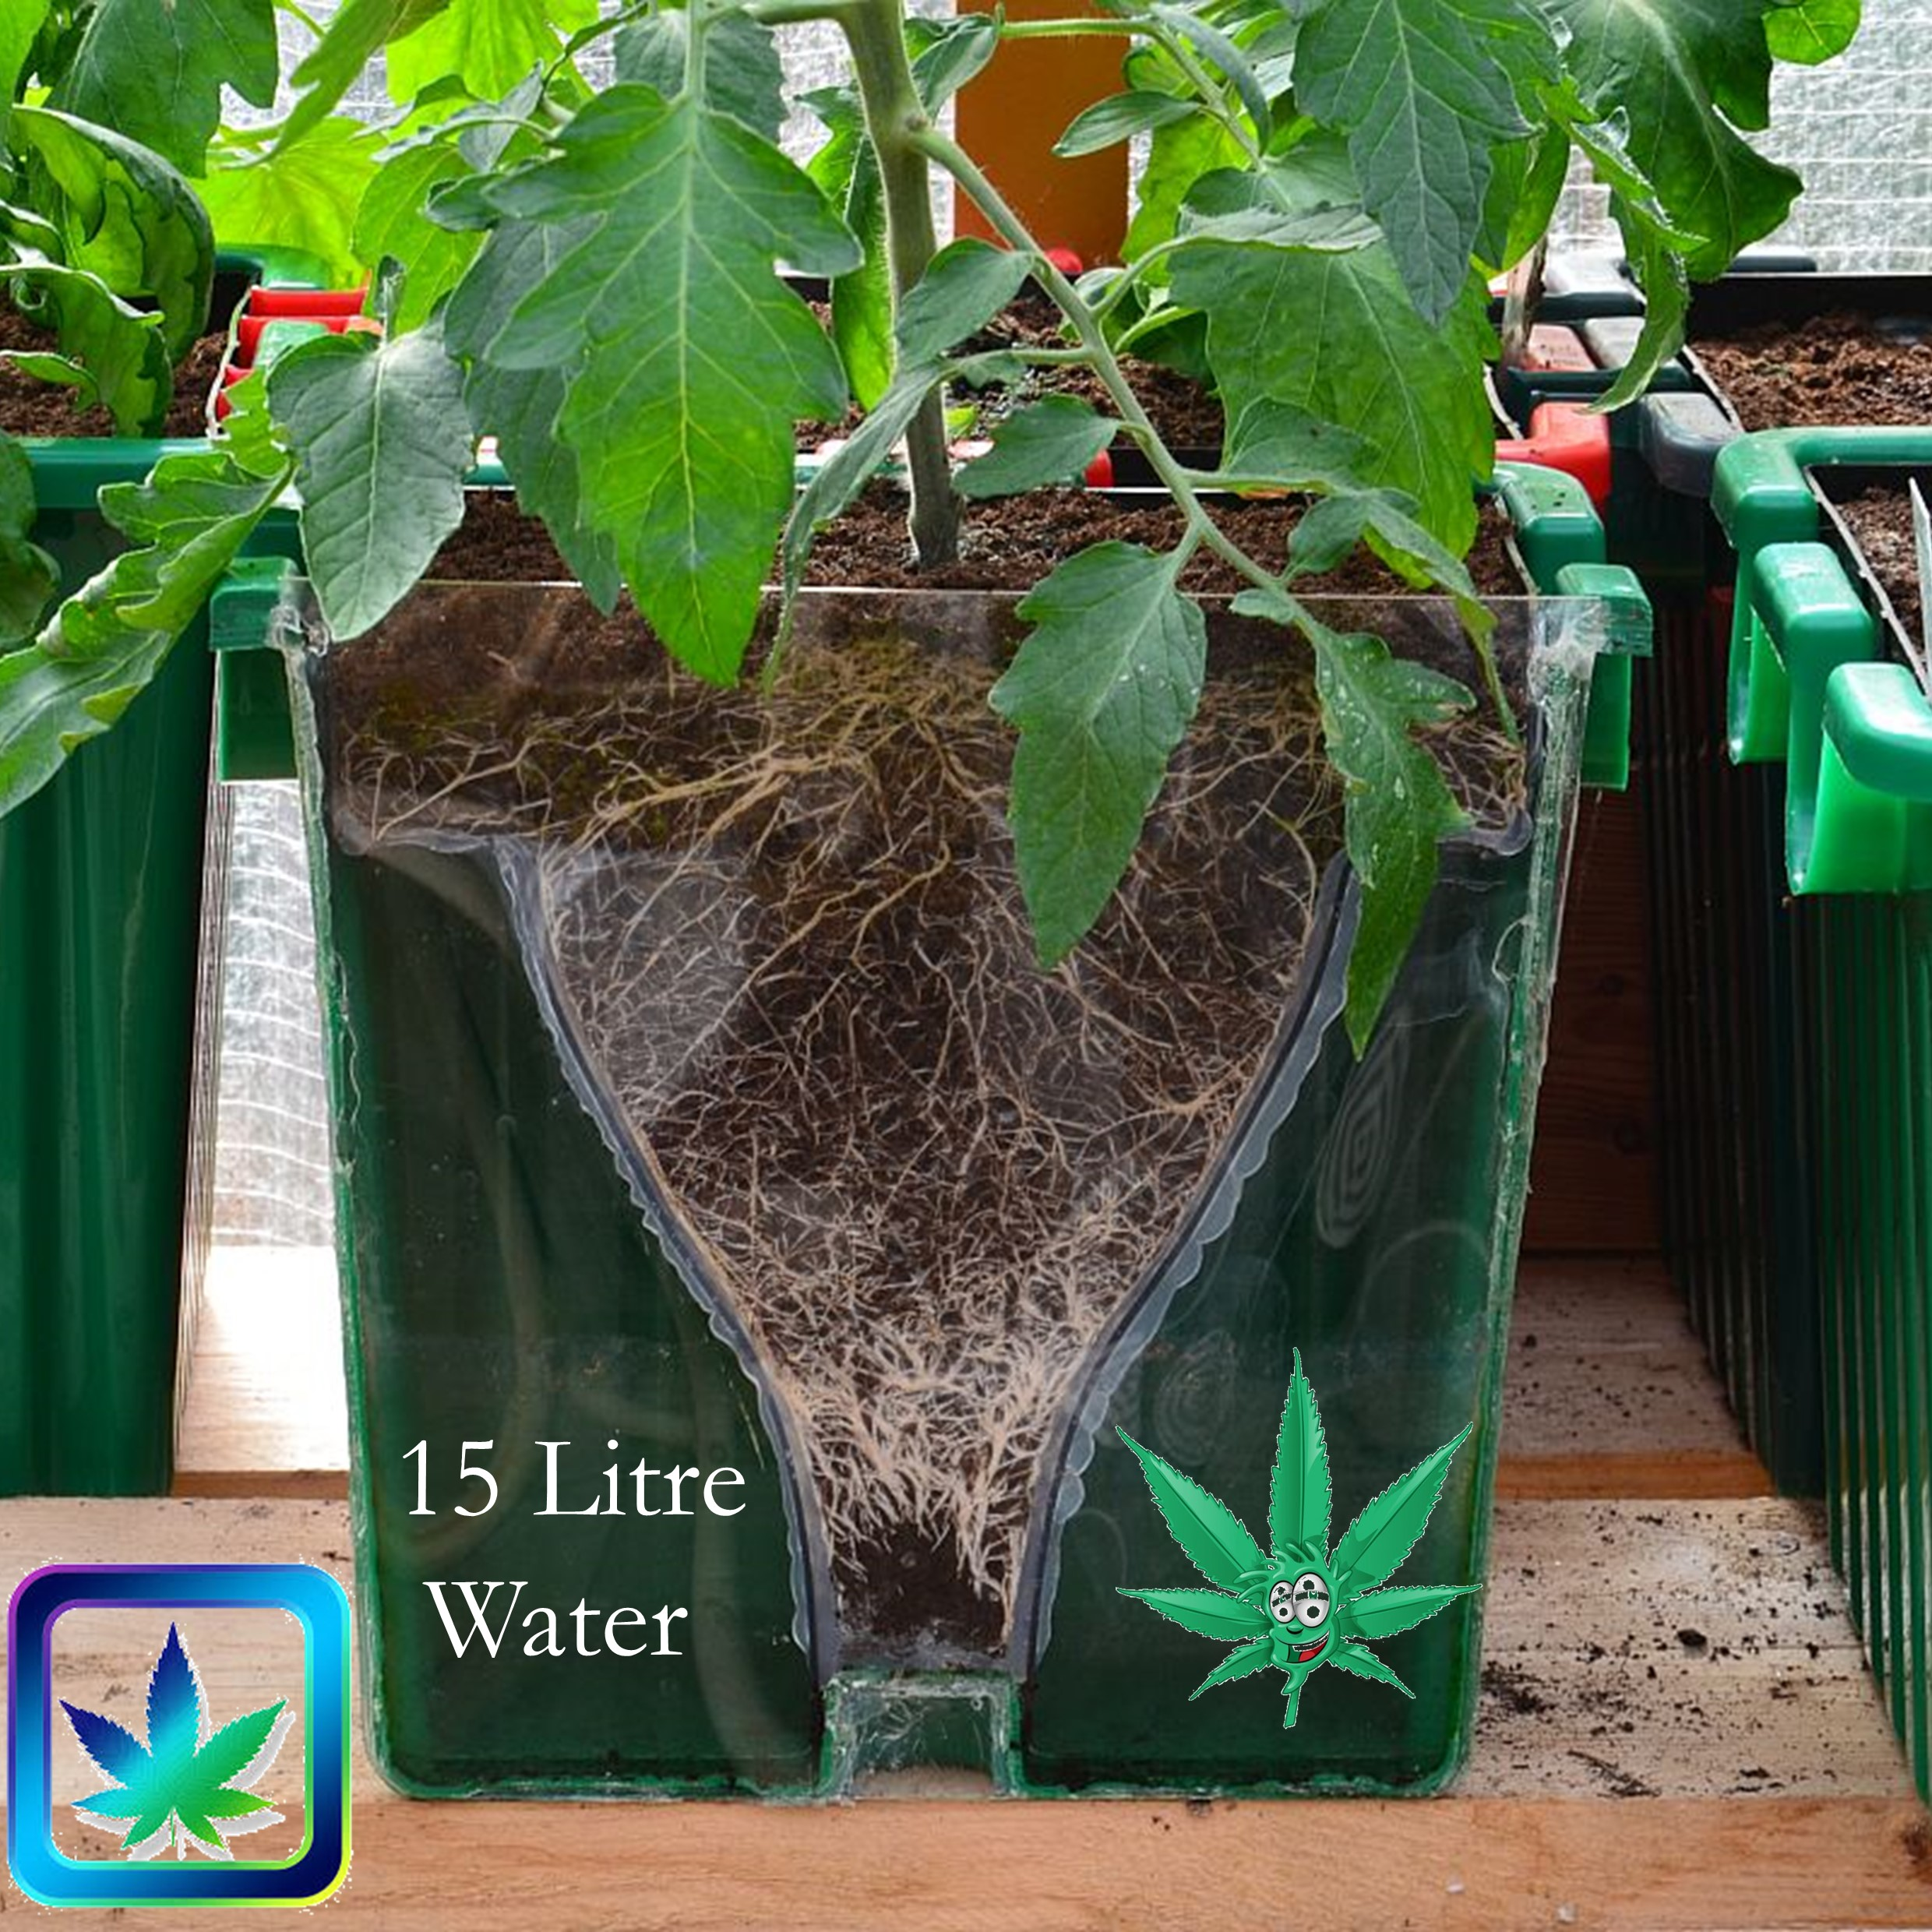 420 Grow Pot with see through side